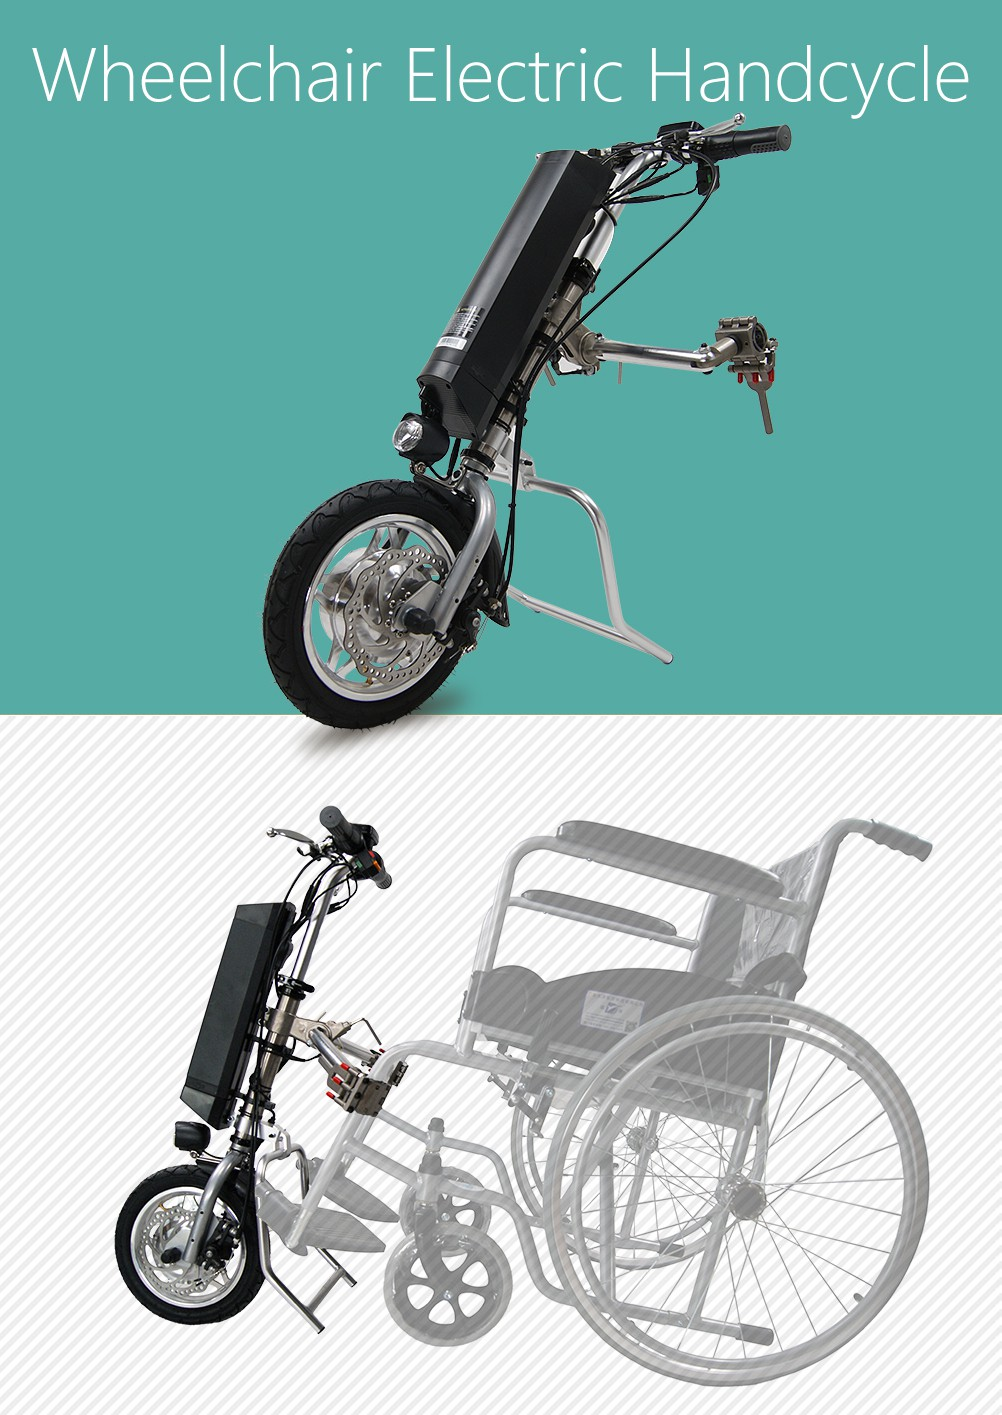 250w disc brank and hand brake electric wheelchair bike handcycle trike wholesale online